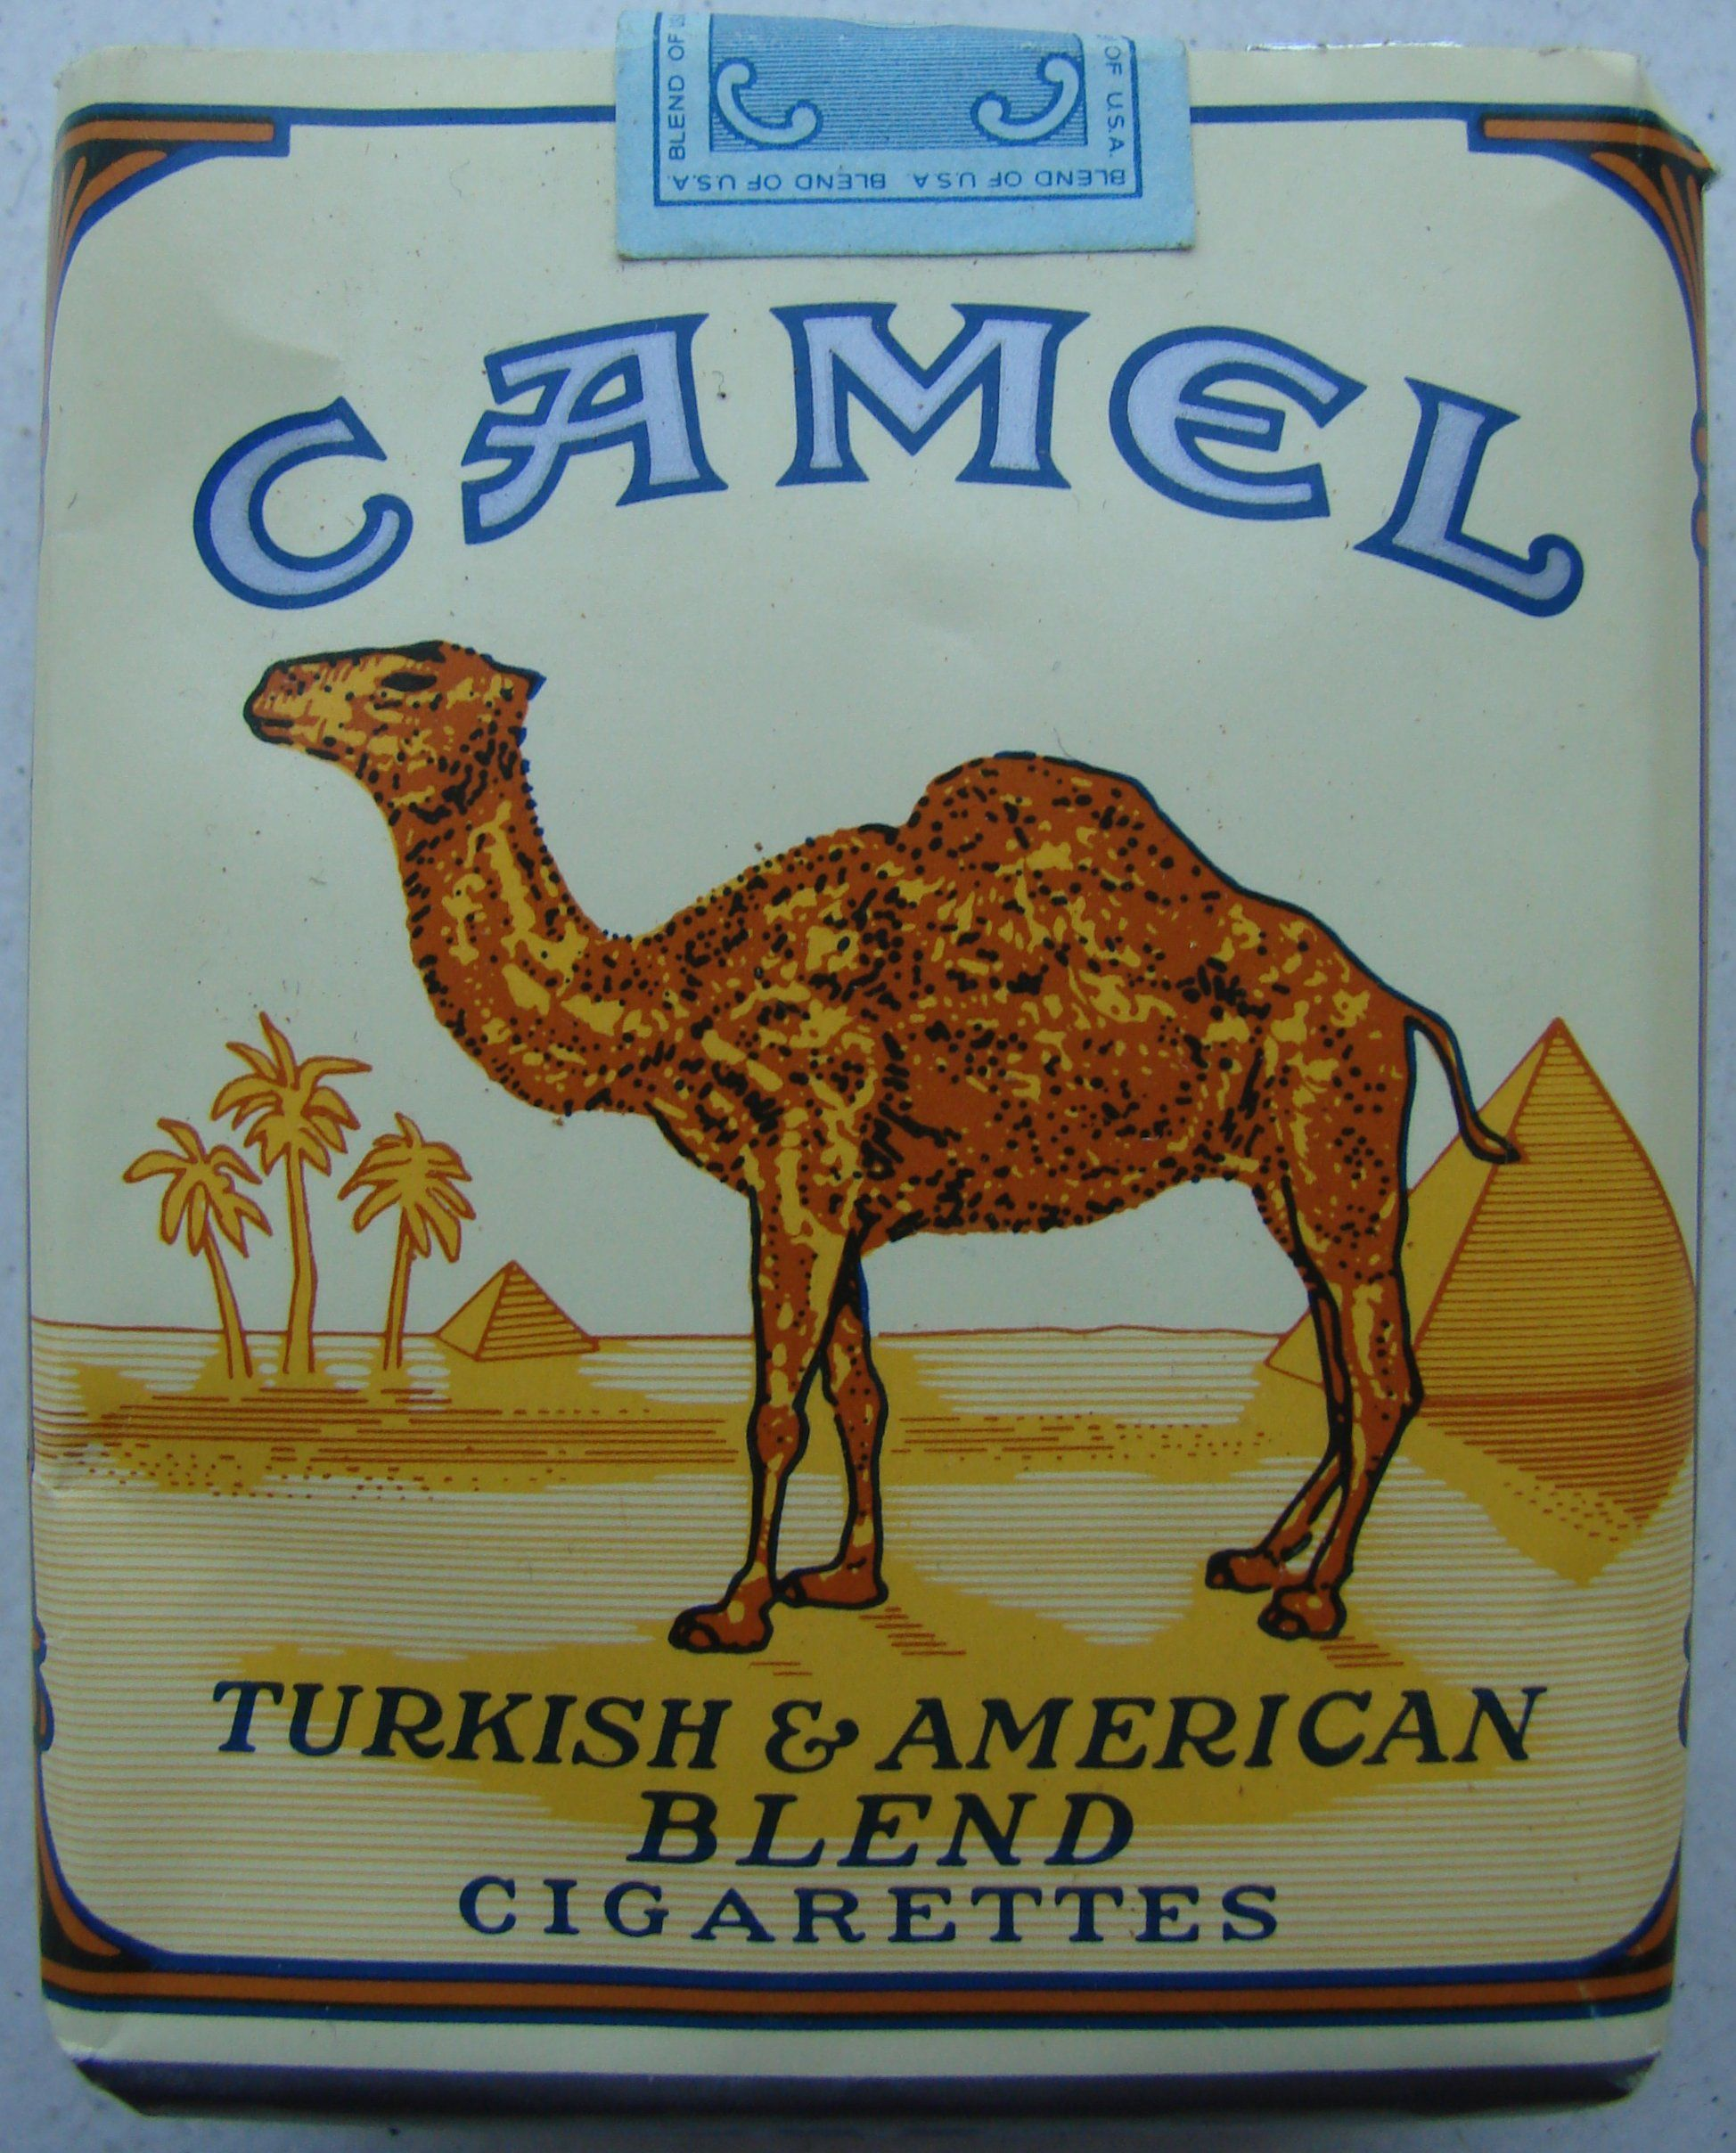 he pulled a camel out of a pack left lying on the desk sometimes he rh pinterest com camel cigarettes logo hidden images camel cigarette logo subliminal